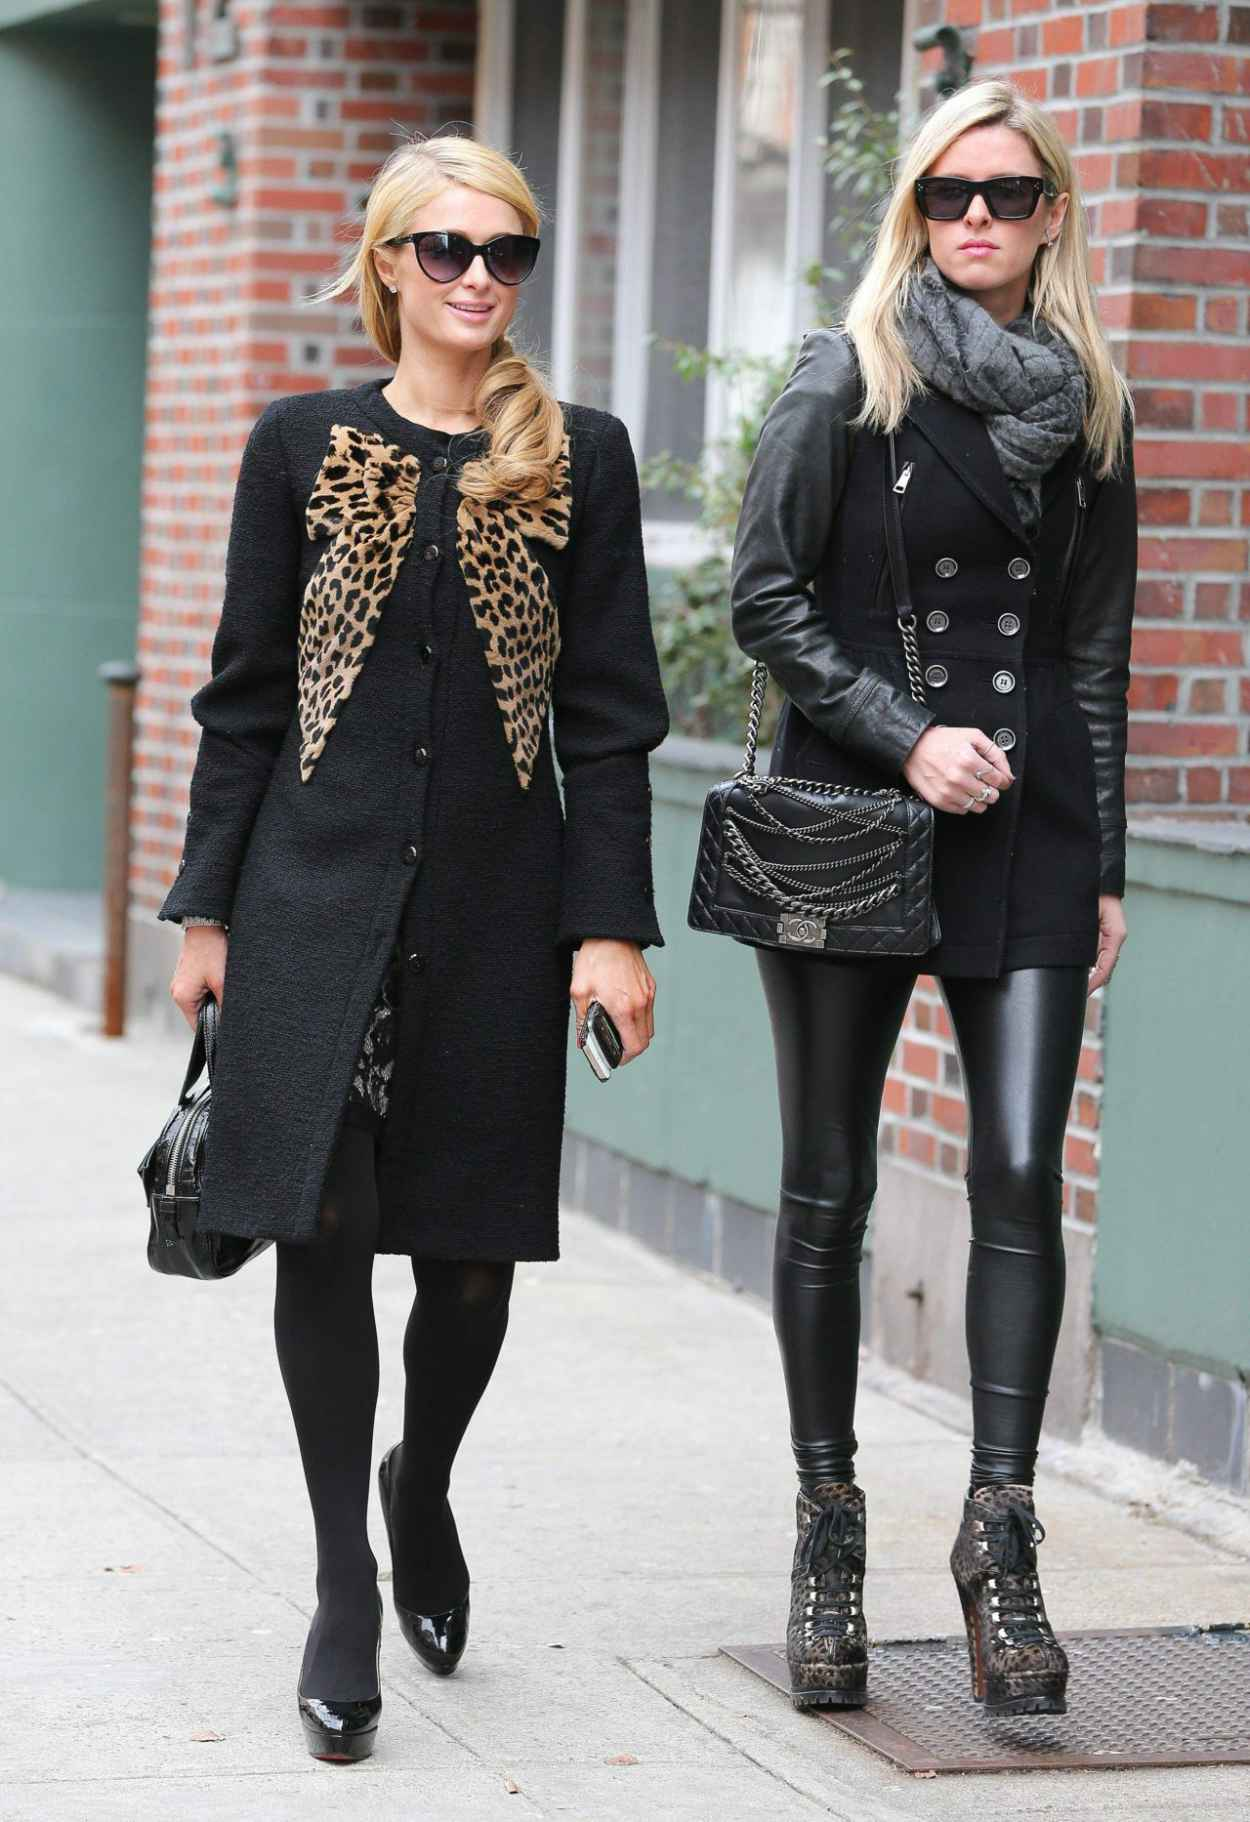 Paris Hilton & Nicky Hilton Street Style - Meat Packing District In NY, January 2015-1